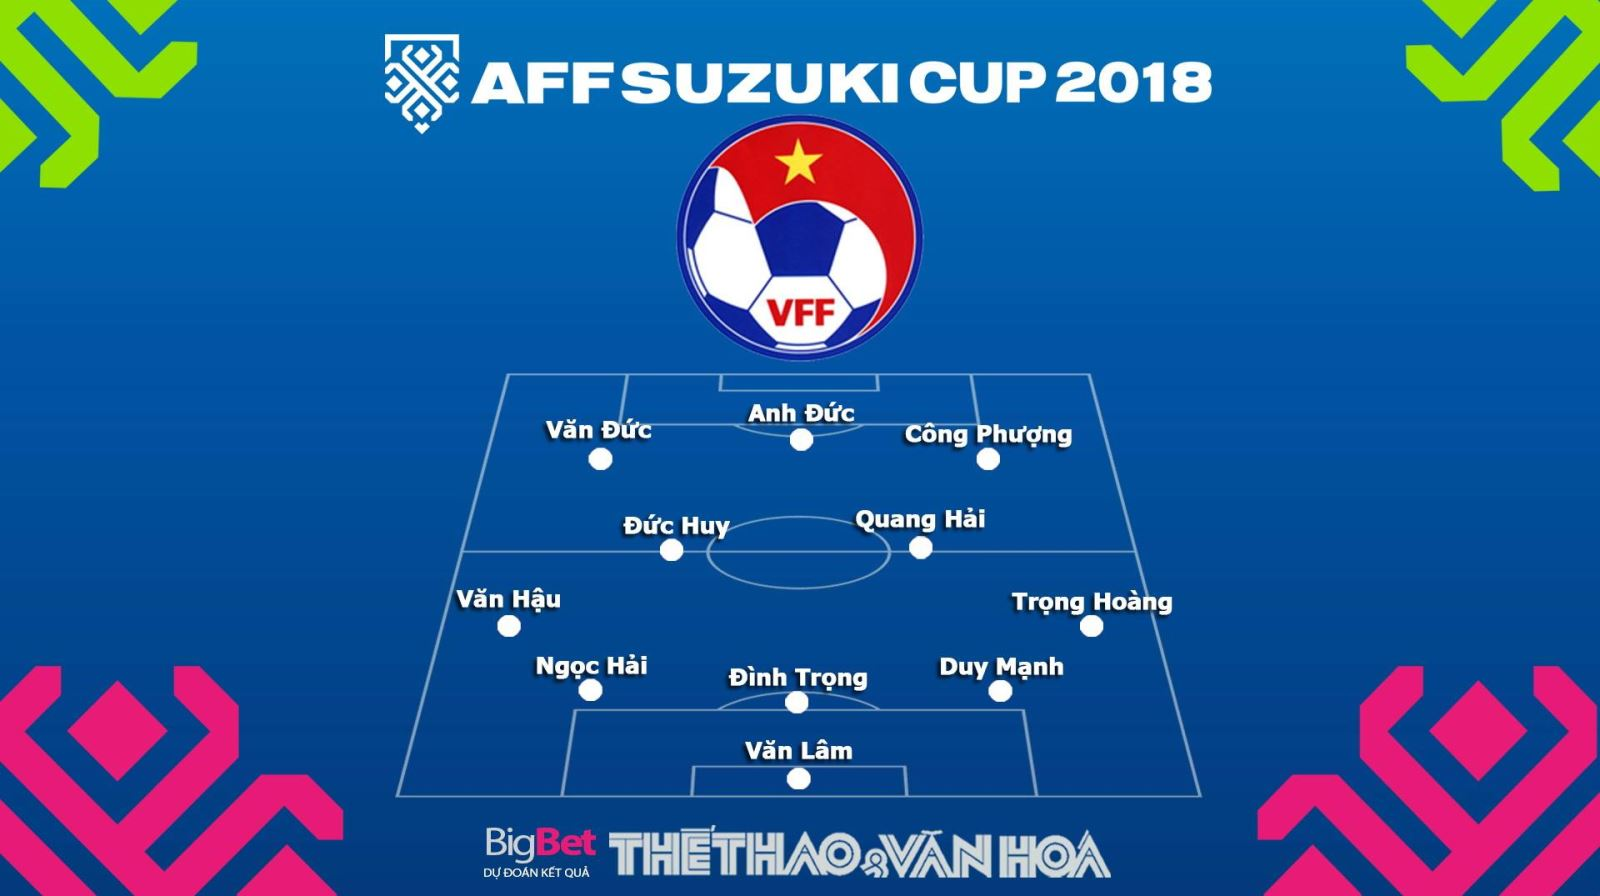 AFF Cup, AFF Cup 2018, Lịch thi đấu AFF Cup, lịch thi đấu aff cup 2018, lịch aff cup 2018, lịch thi đấu bóng đá, lịch thi đấu bóng đá hôm nay, lịch thi đấu AFF Suzuki Cup 2018